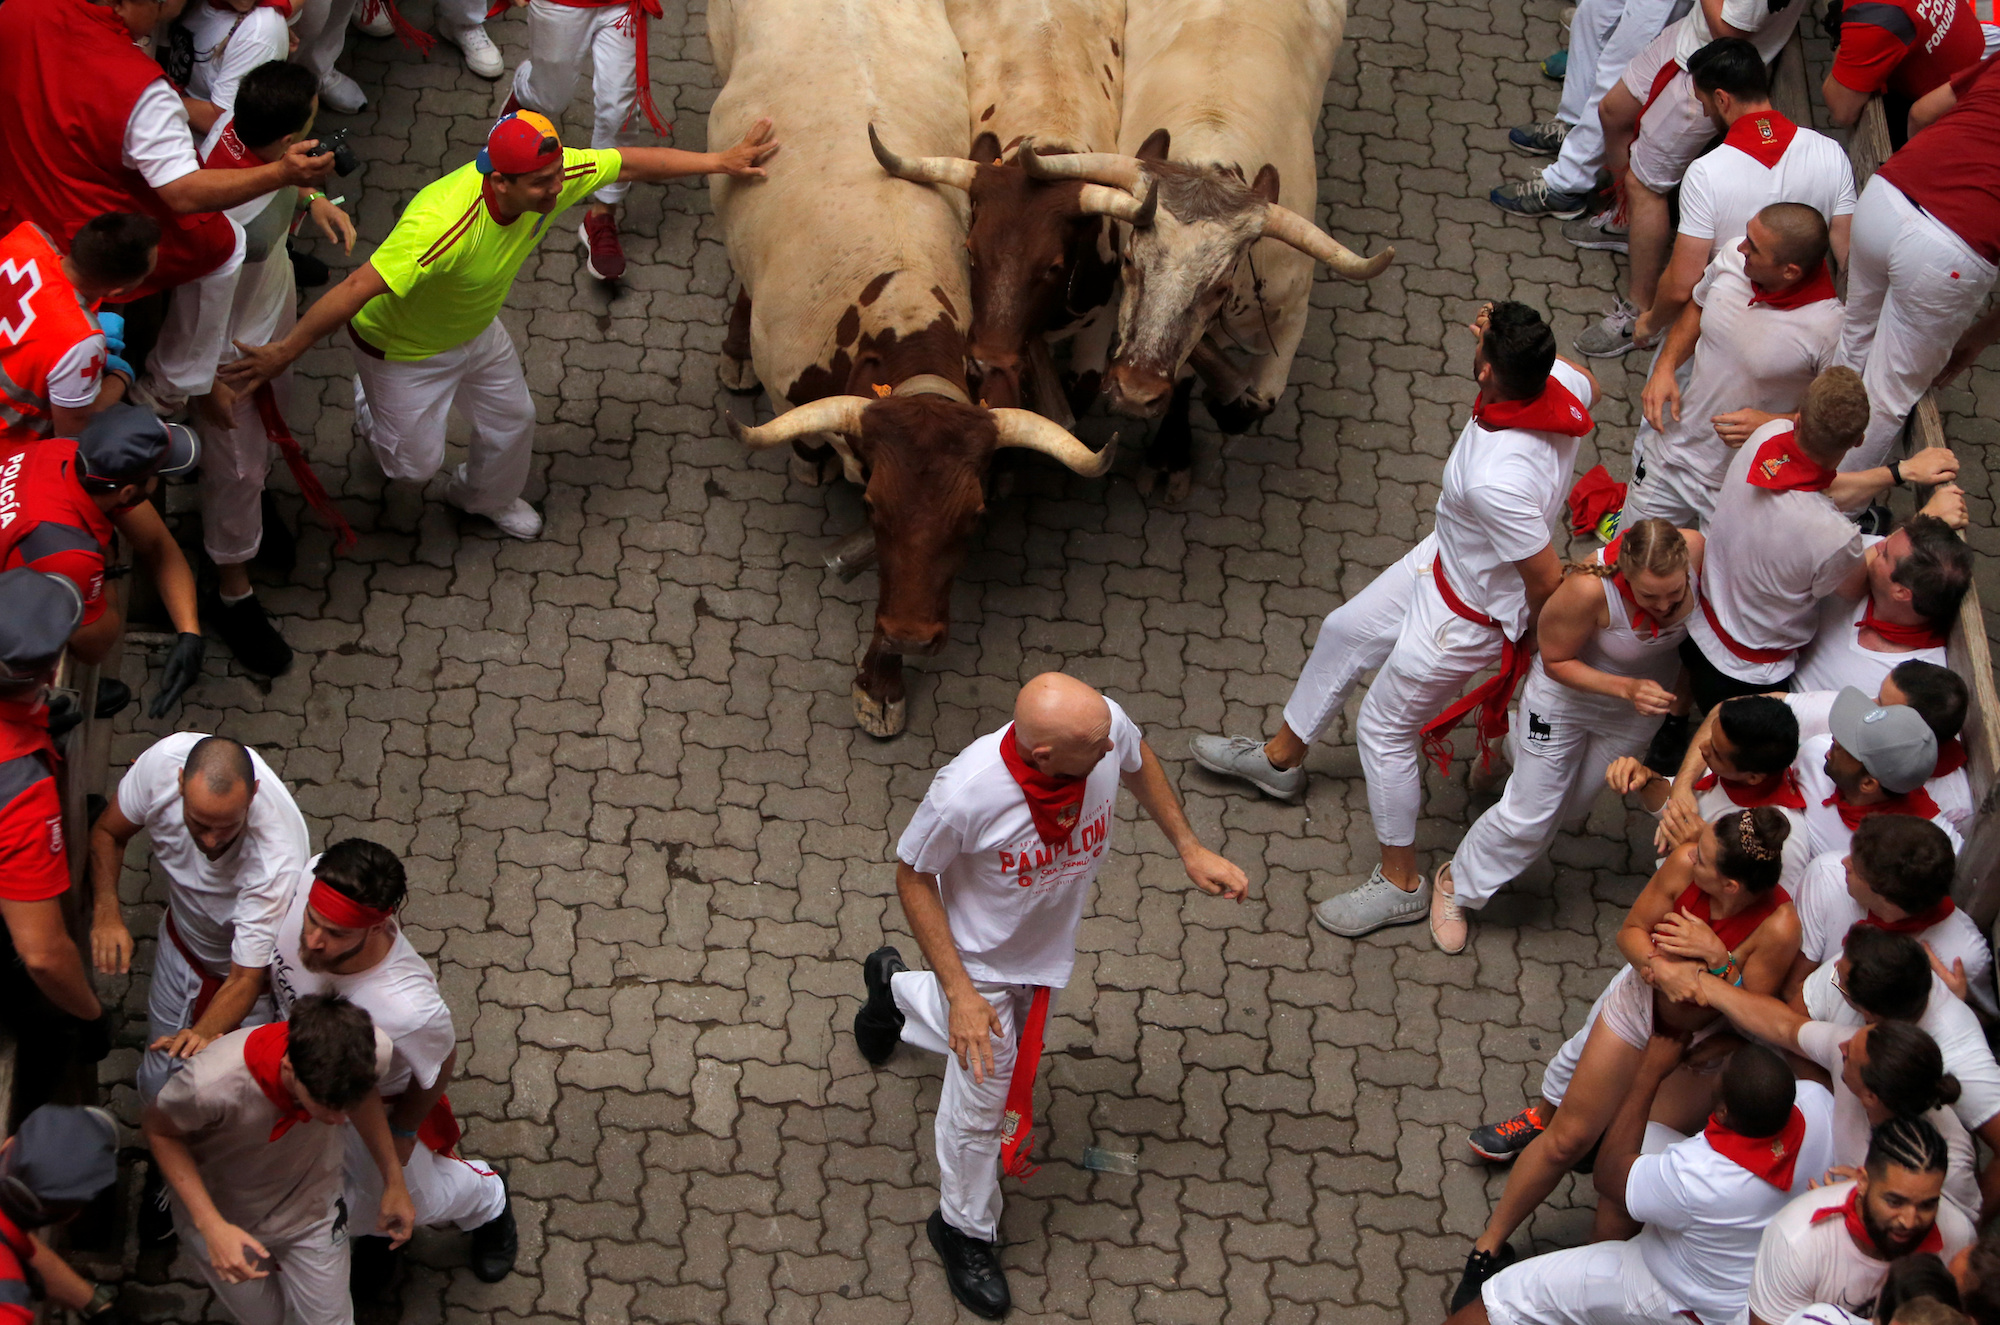 Two Americans Gored During Bull-running Festival in Spain